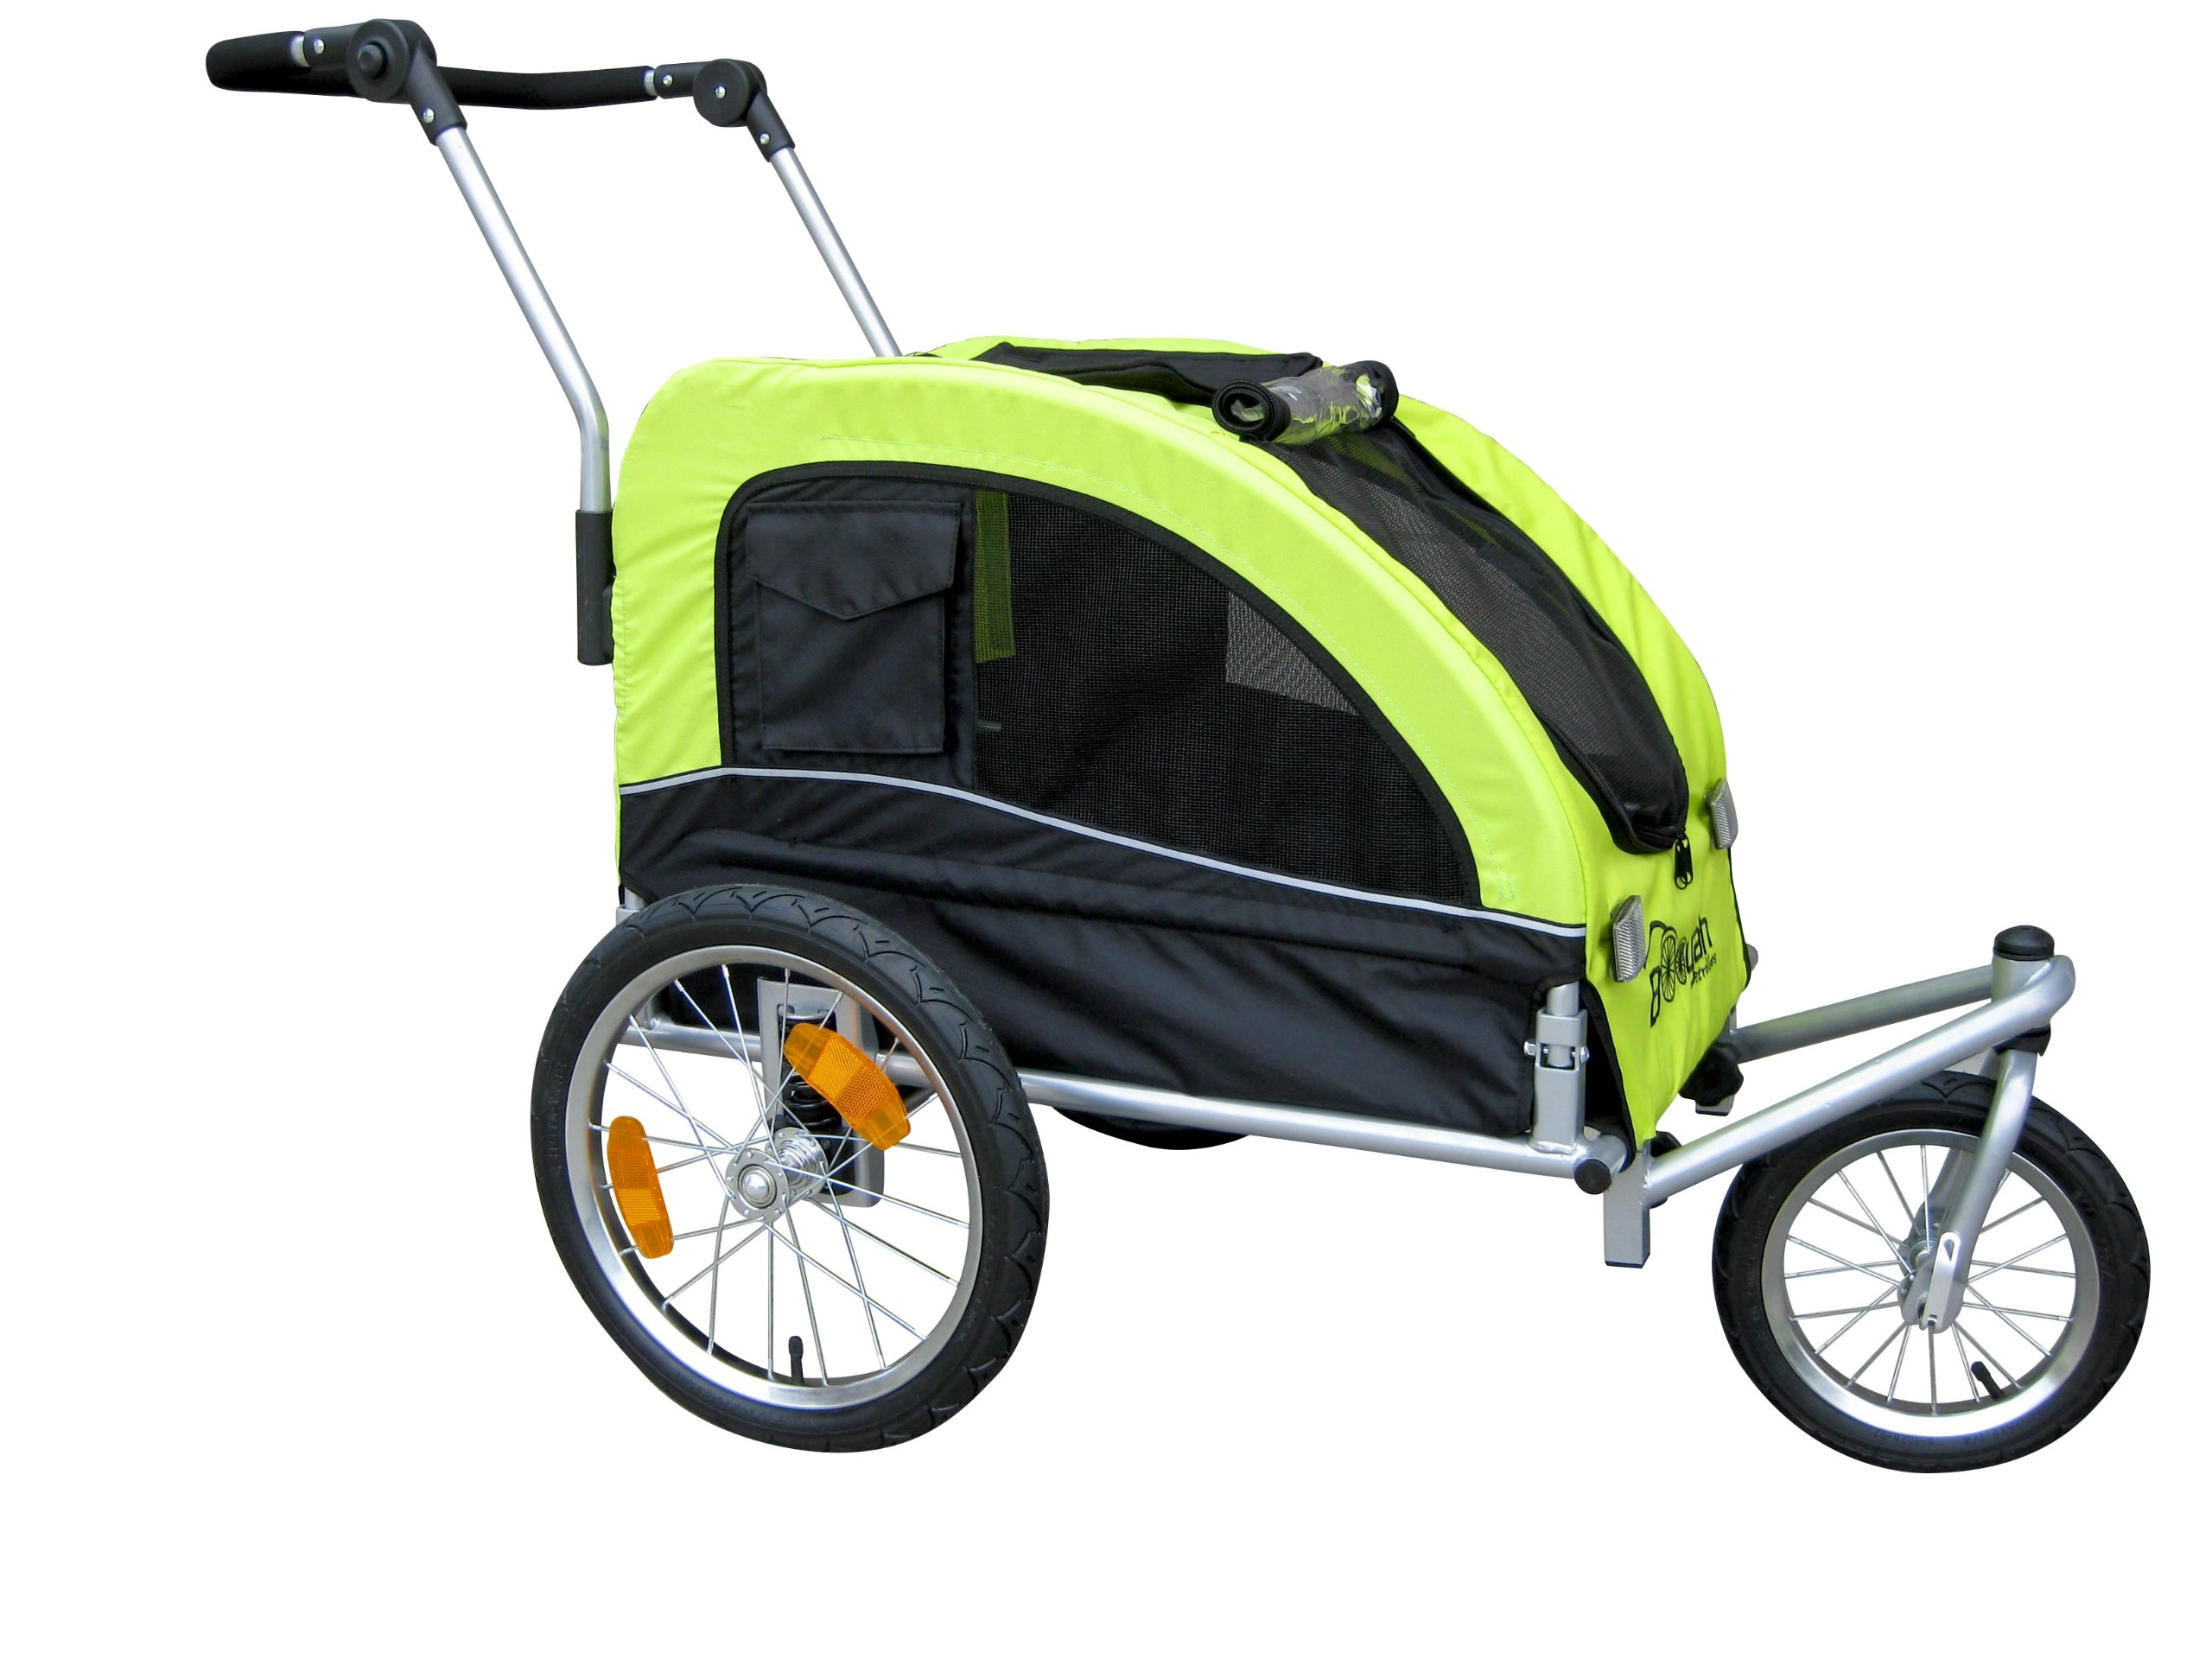 Booyah Medium Dog Stroller & Pet Bike Trailer and with Suspension - Florescent Green by Booyah Strollers